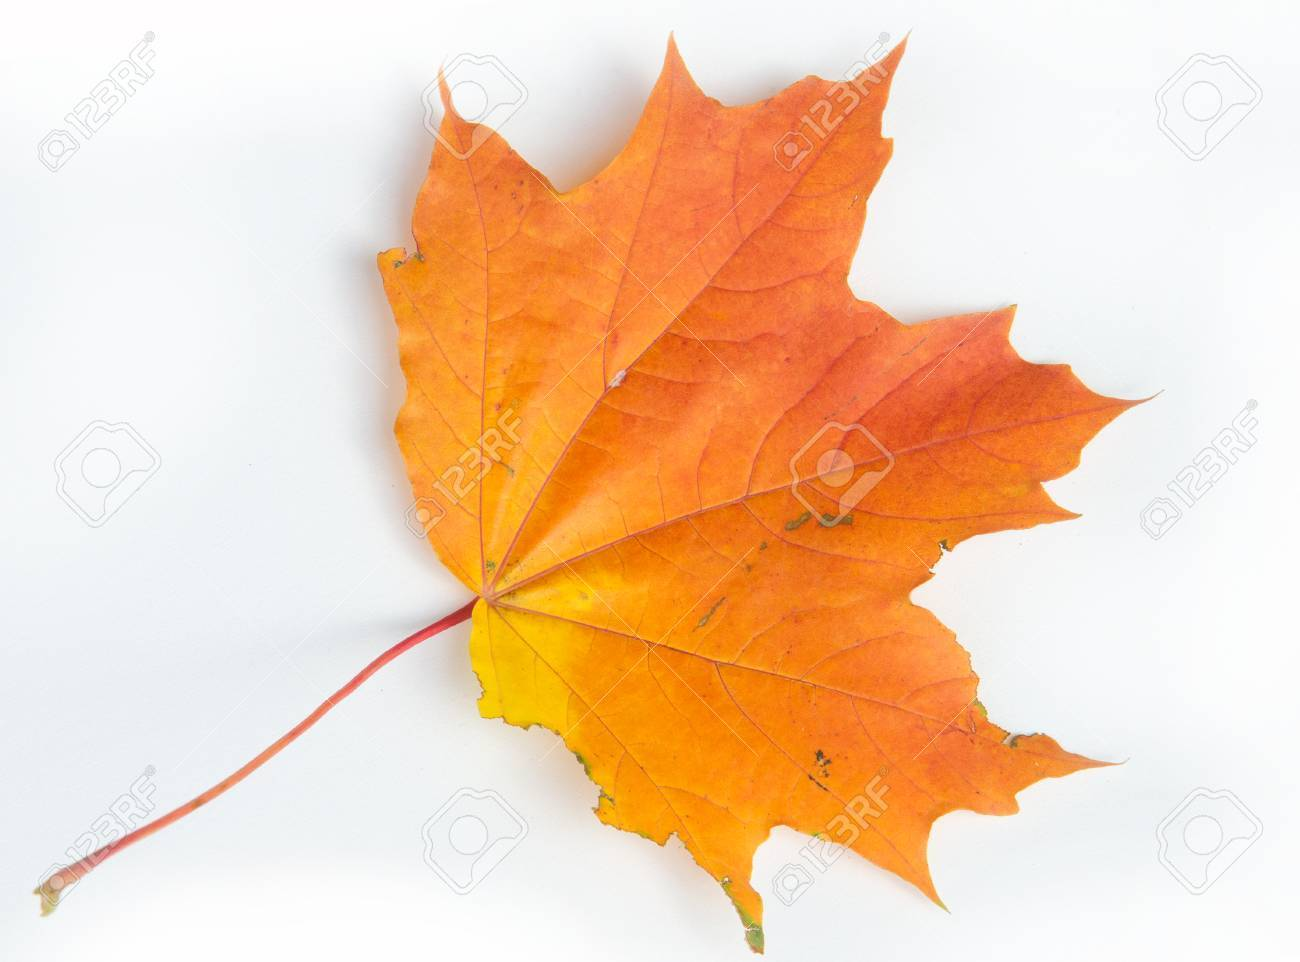 Autumn Leaves Studio Autumn Leaf Isolated On White Background Stock Photo Picture And Royalty Free Image Image 77595077